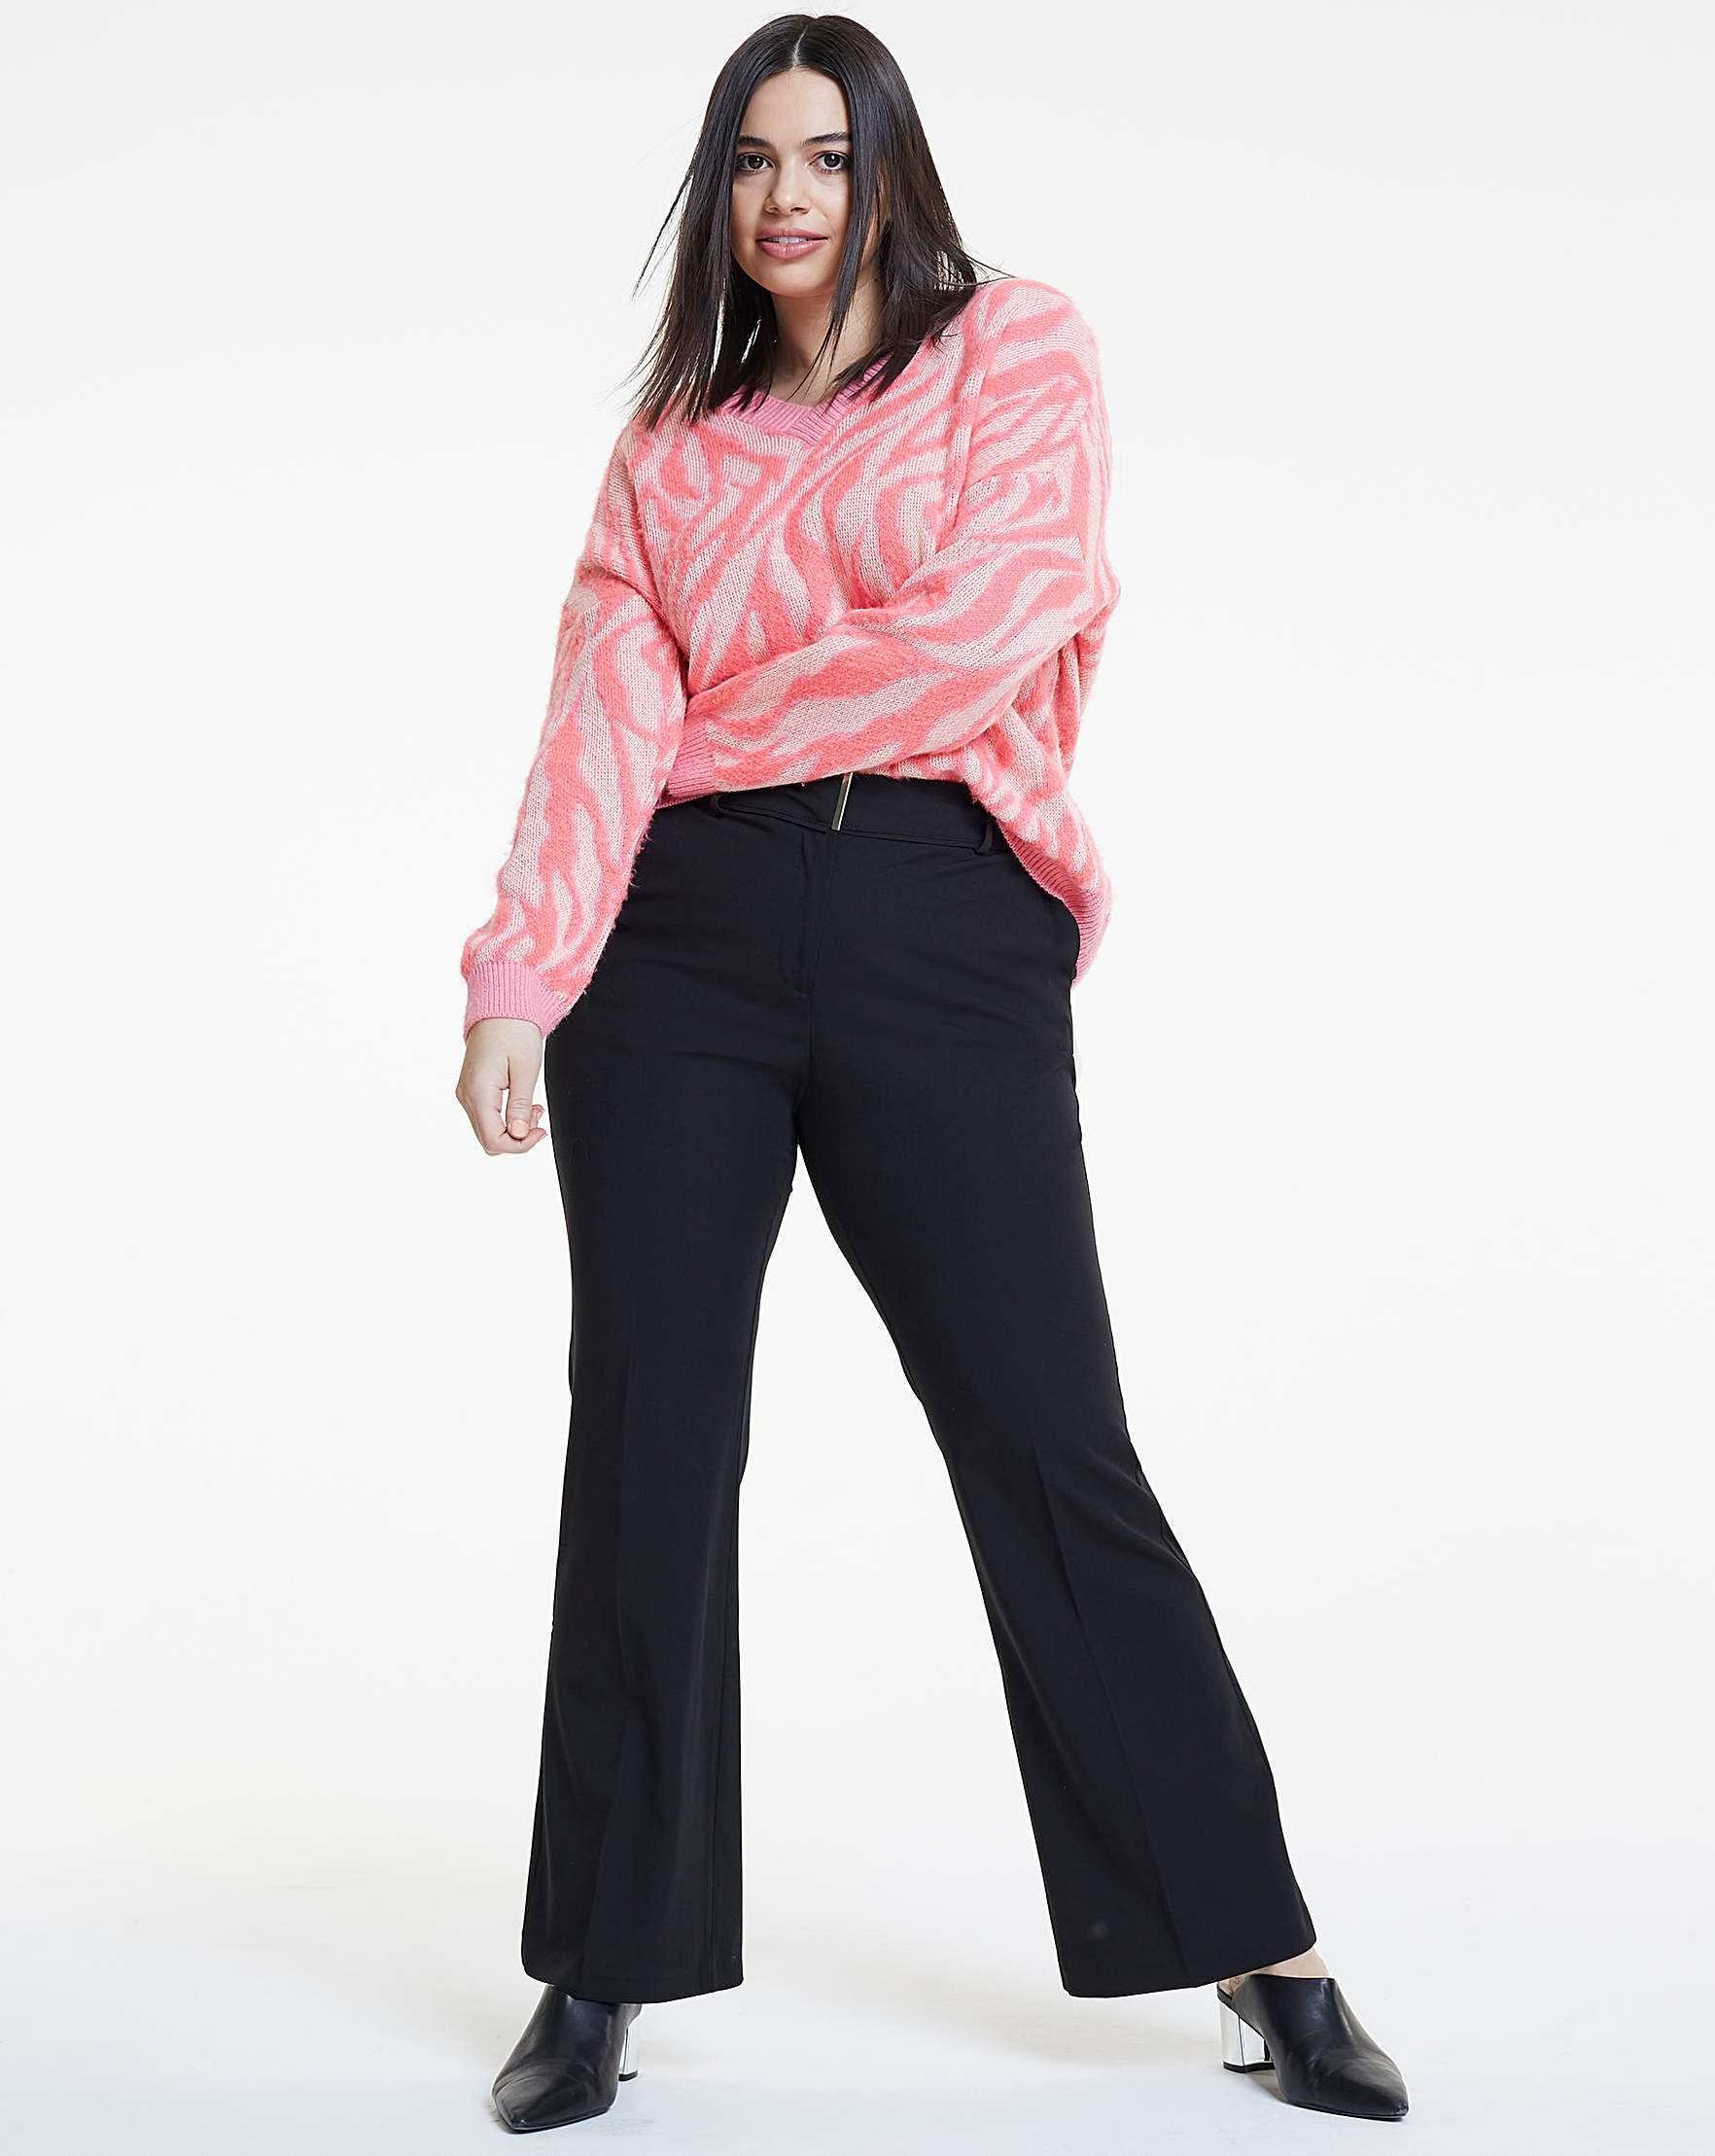 278be68b32b28 Simply Be Workwear Bootcut Trousers Petite in Black - Lyst